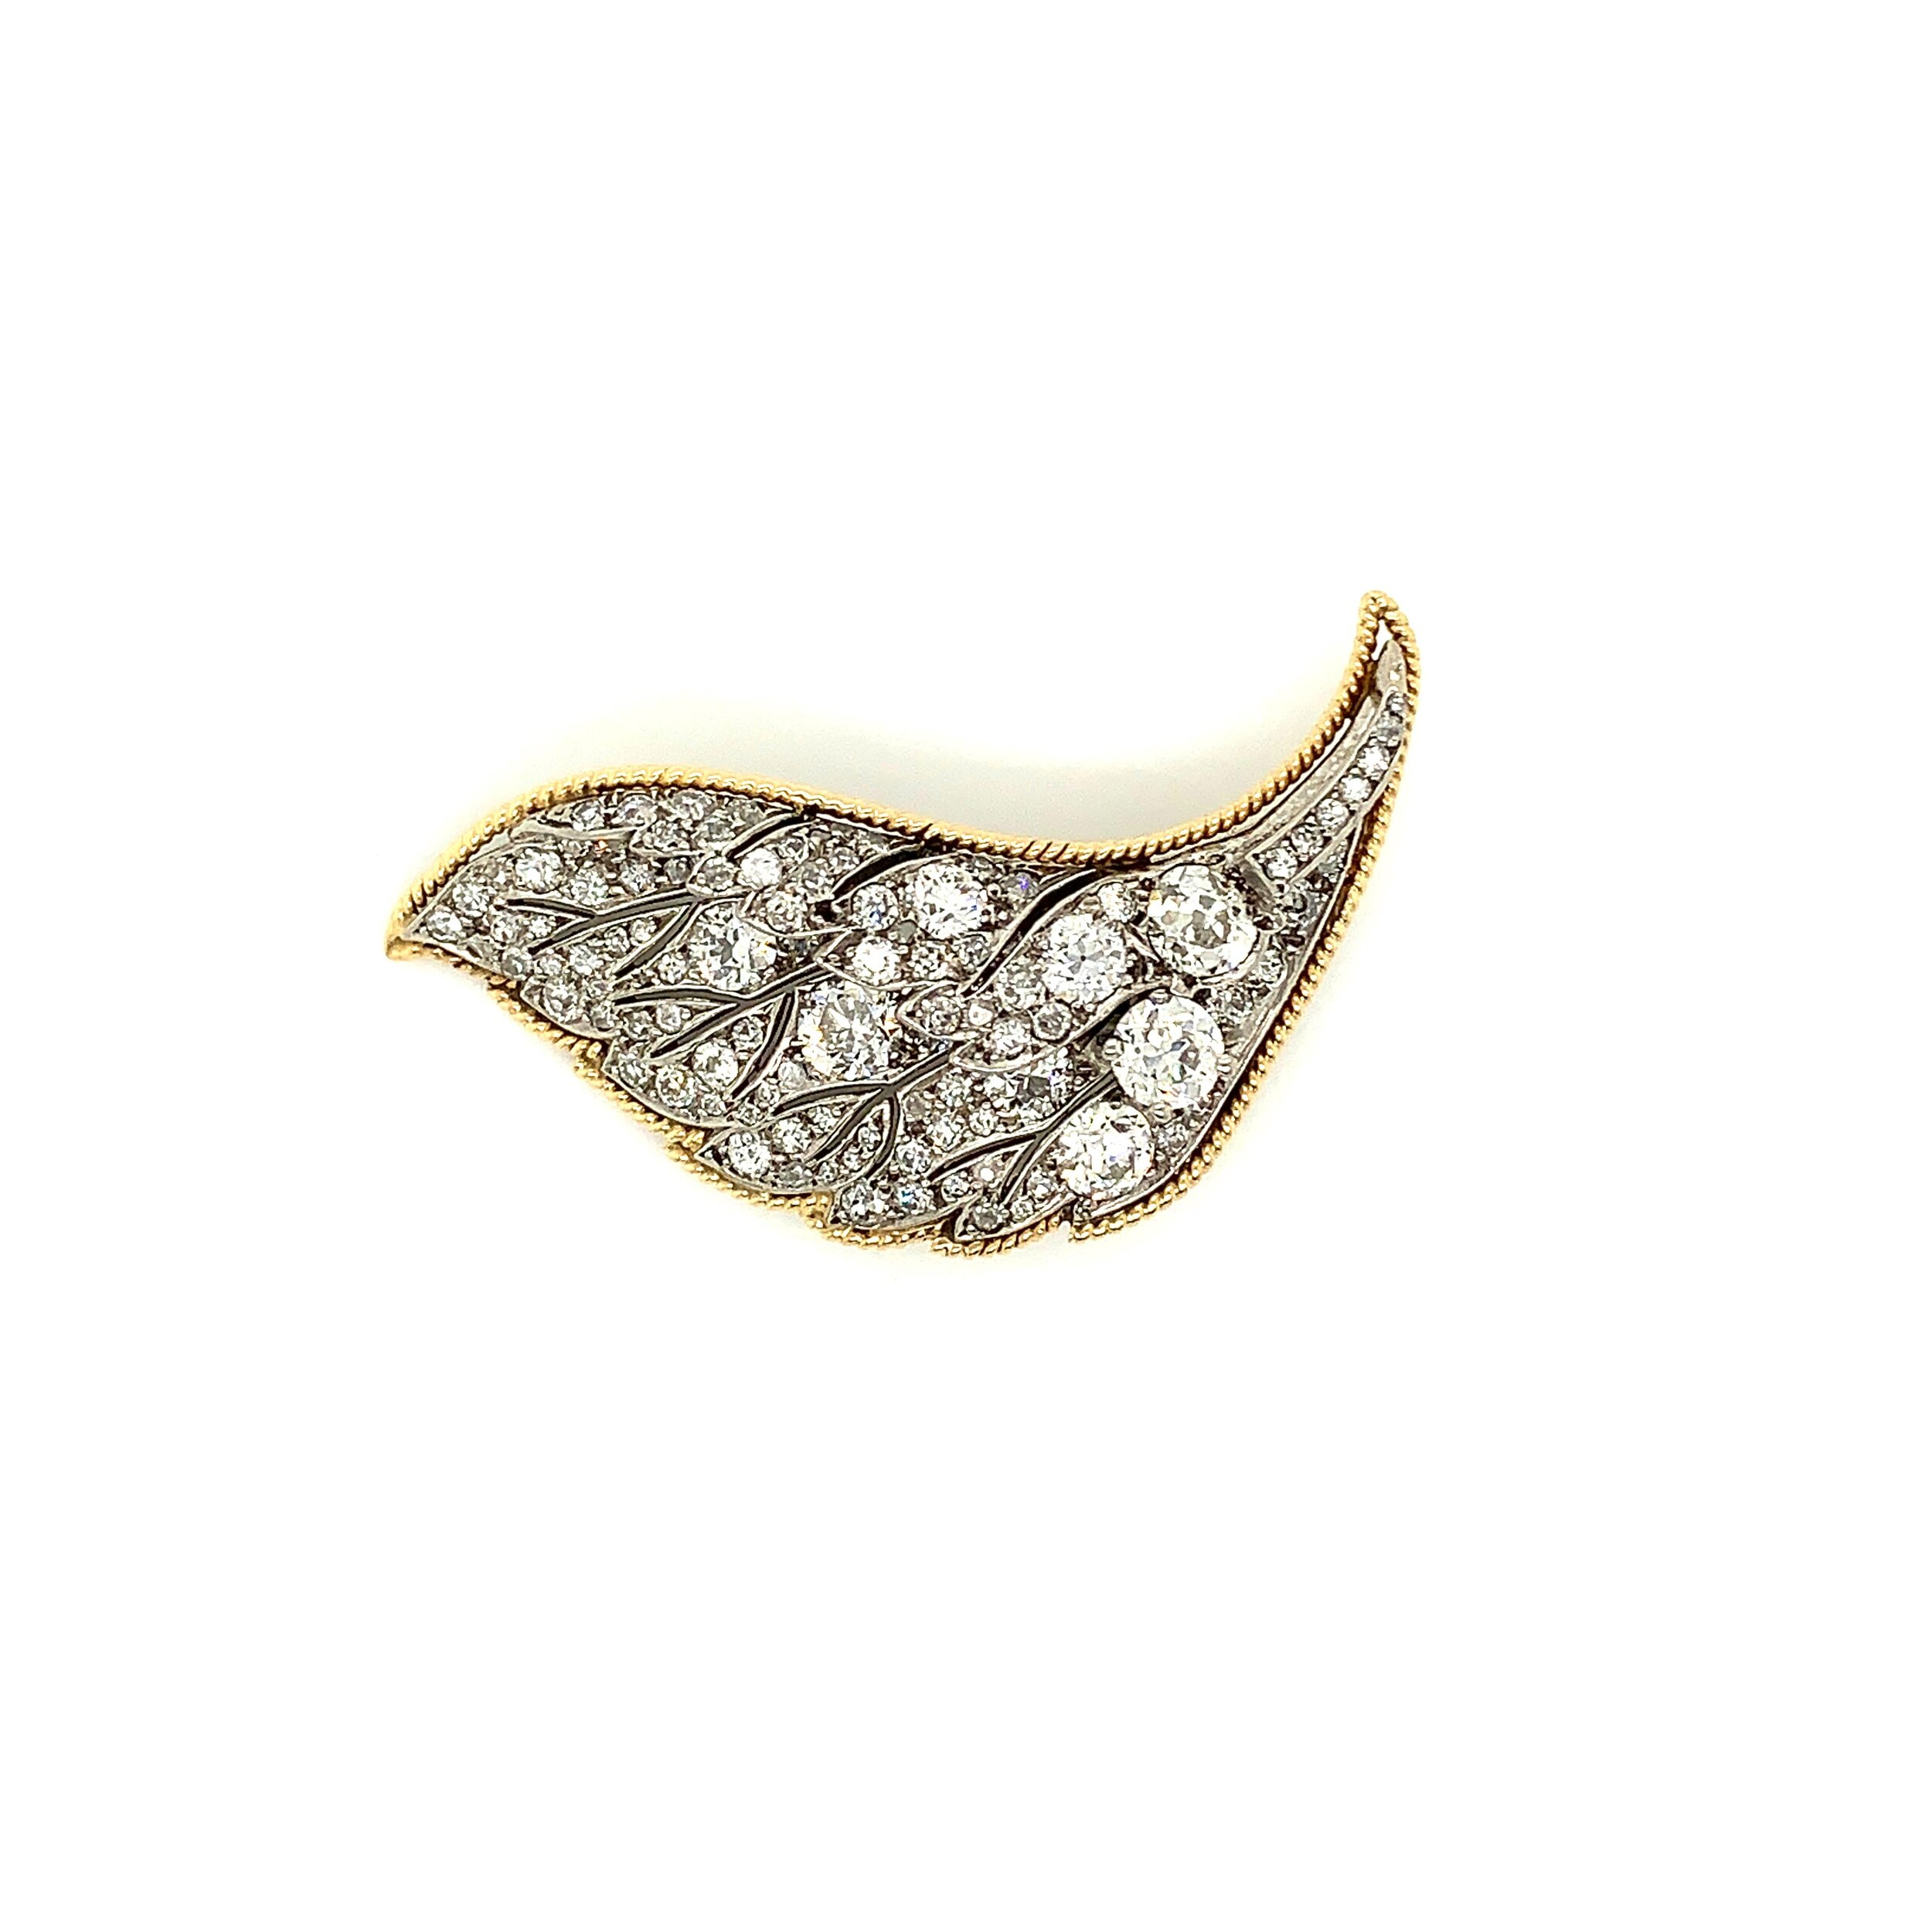 2.4ct Diamond Leaf Brooch set in White and Yellow Gold  Est. US$ 2,500-3,500